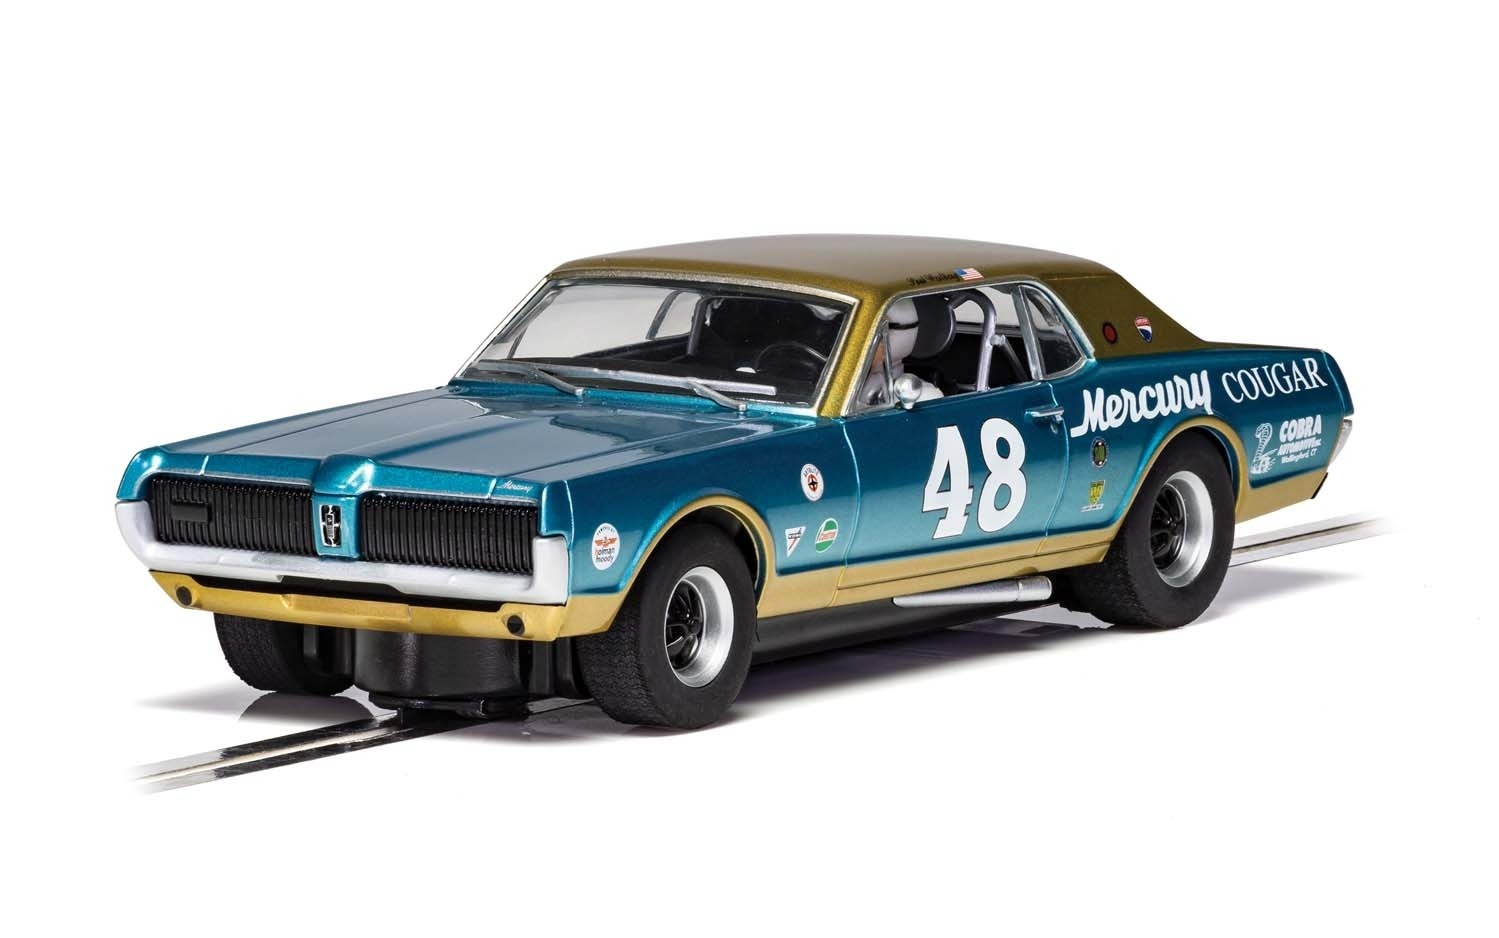 C4160 Scalextric Mercury Cougar, No.48